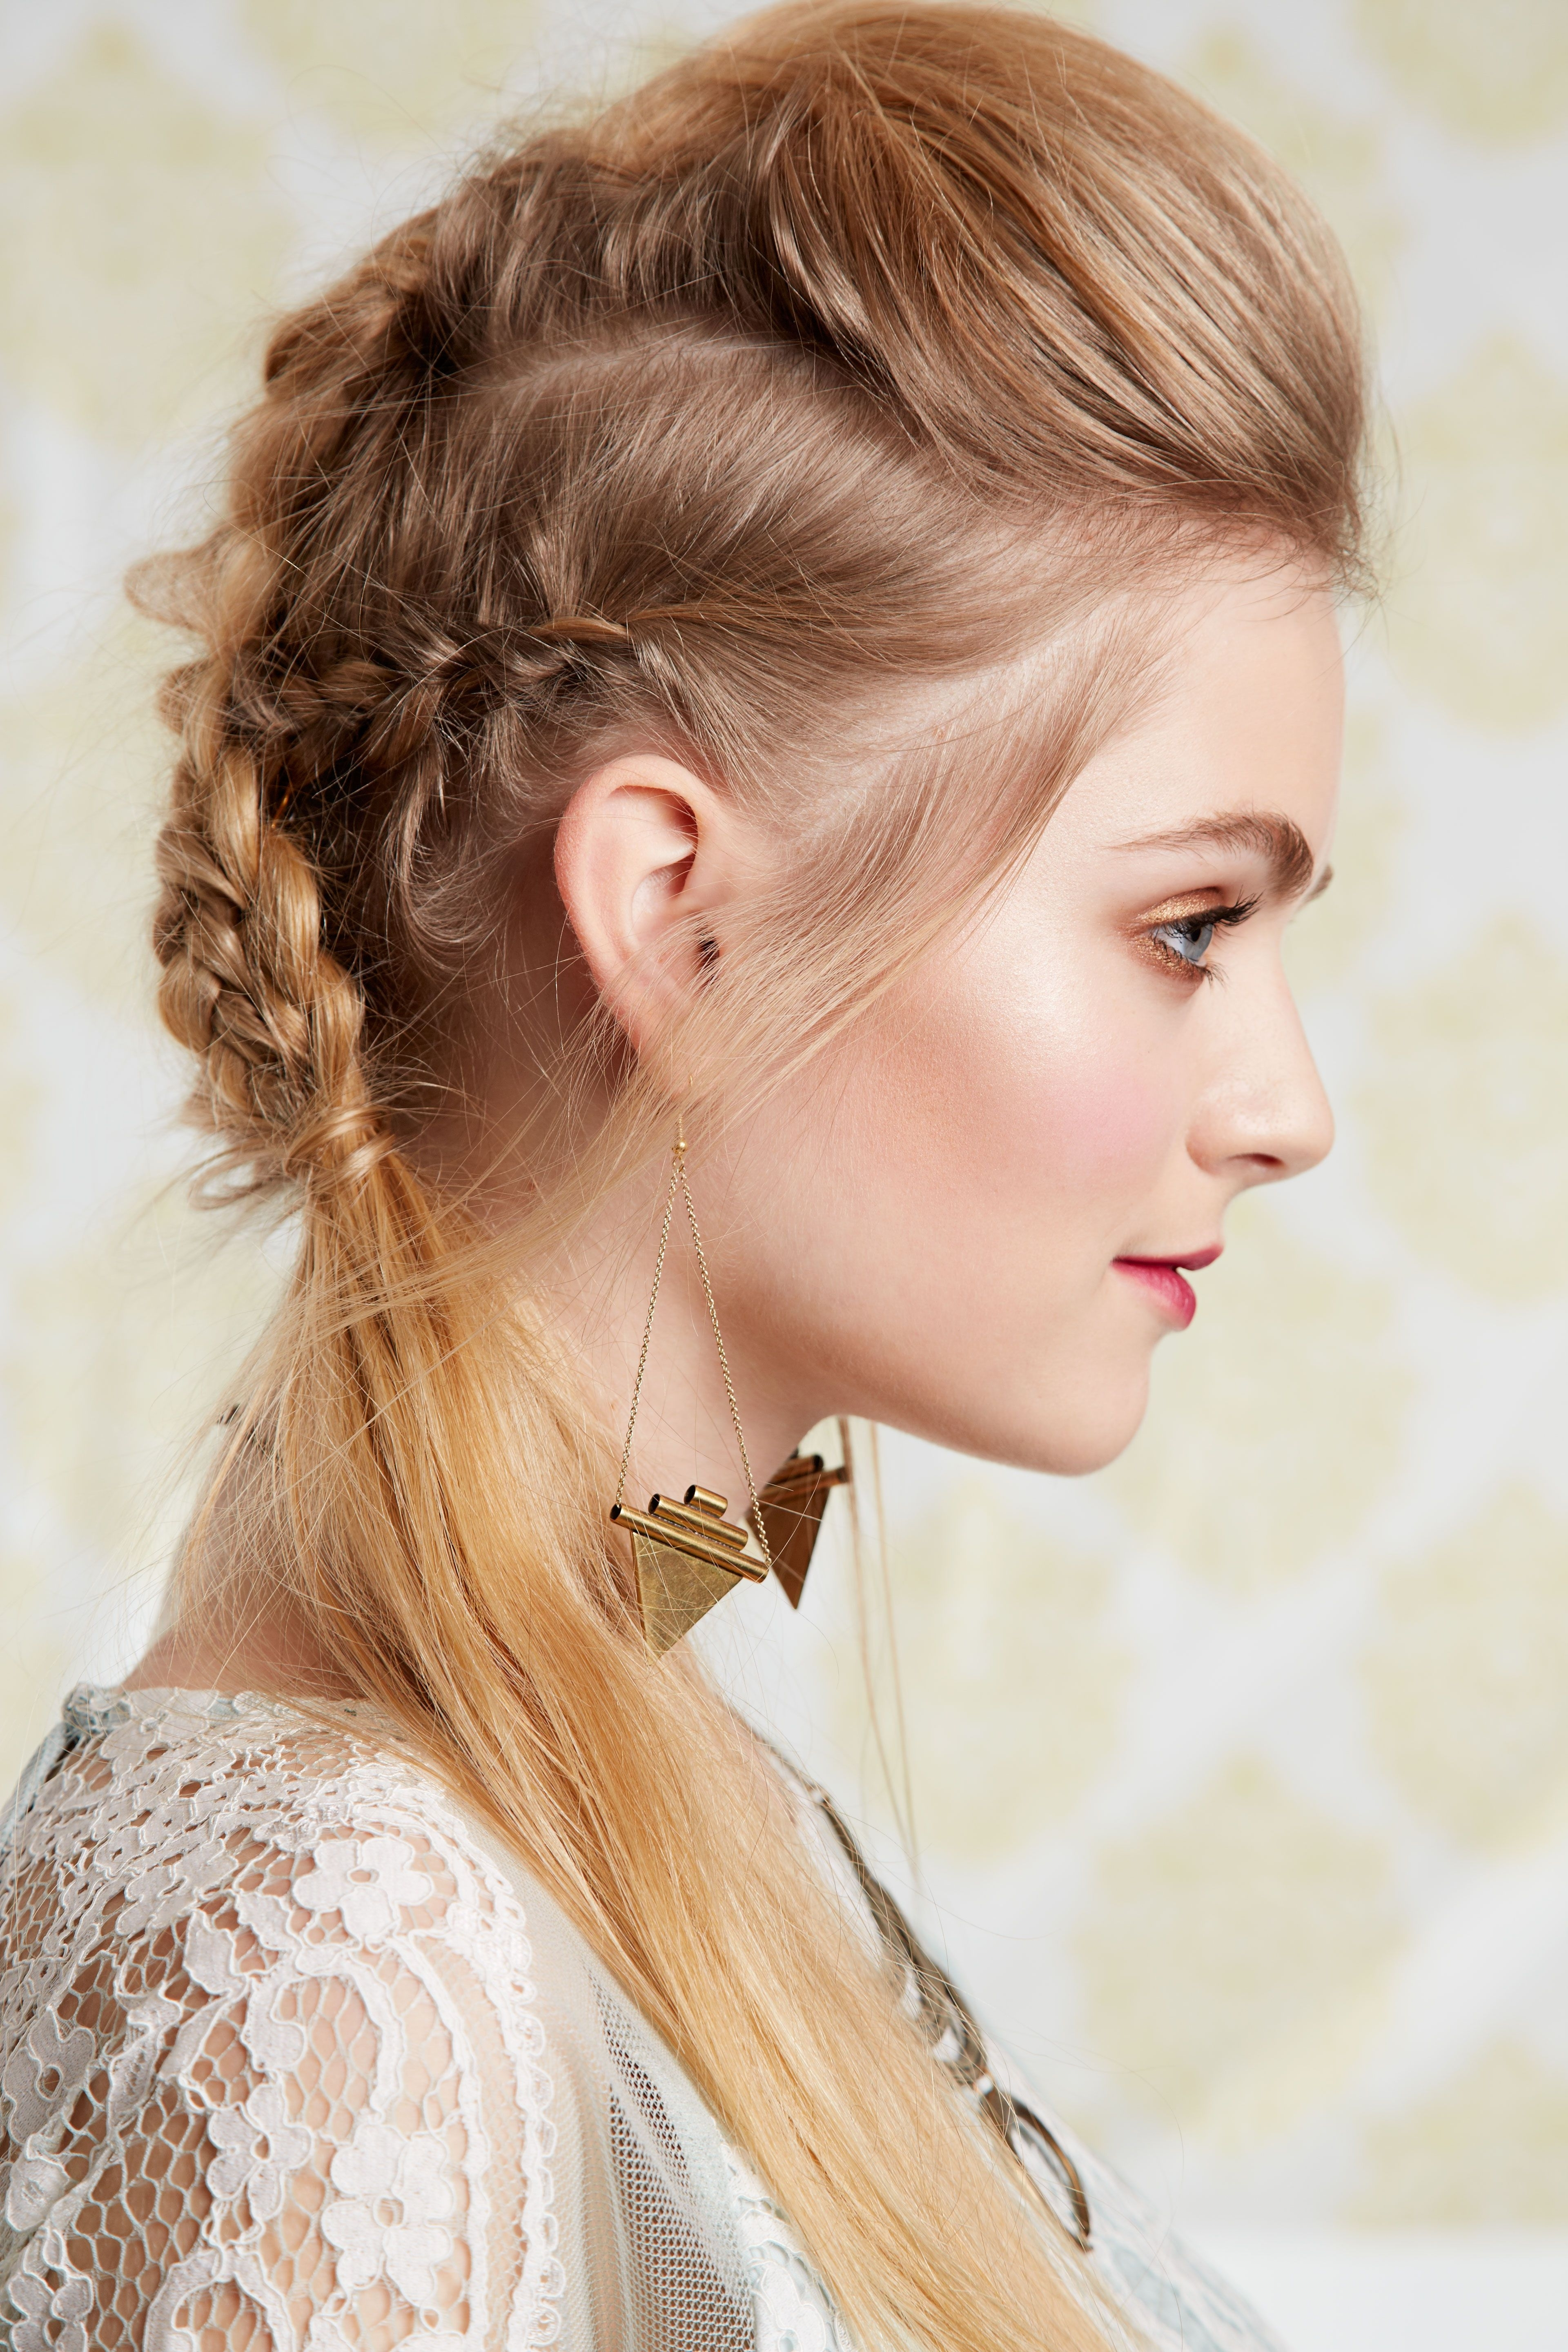 13 Cute Easy Hairstyles For 2018 – Best Quick Hairstyles For Dirty Hair Inside Current Punky Ponytail Hairstyles (View 16 of 20)